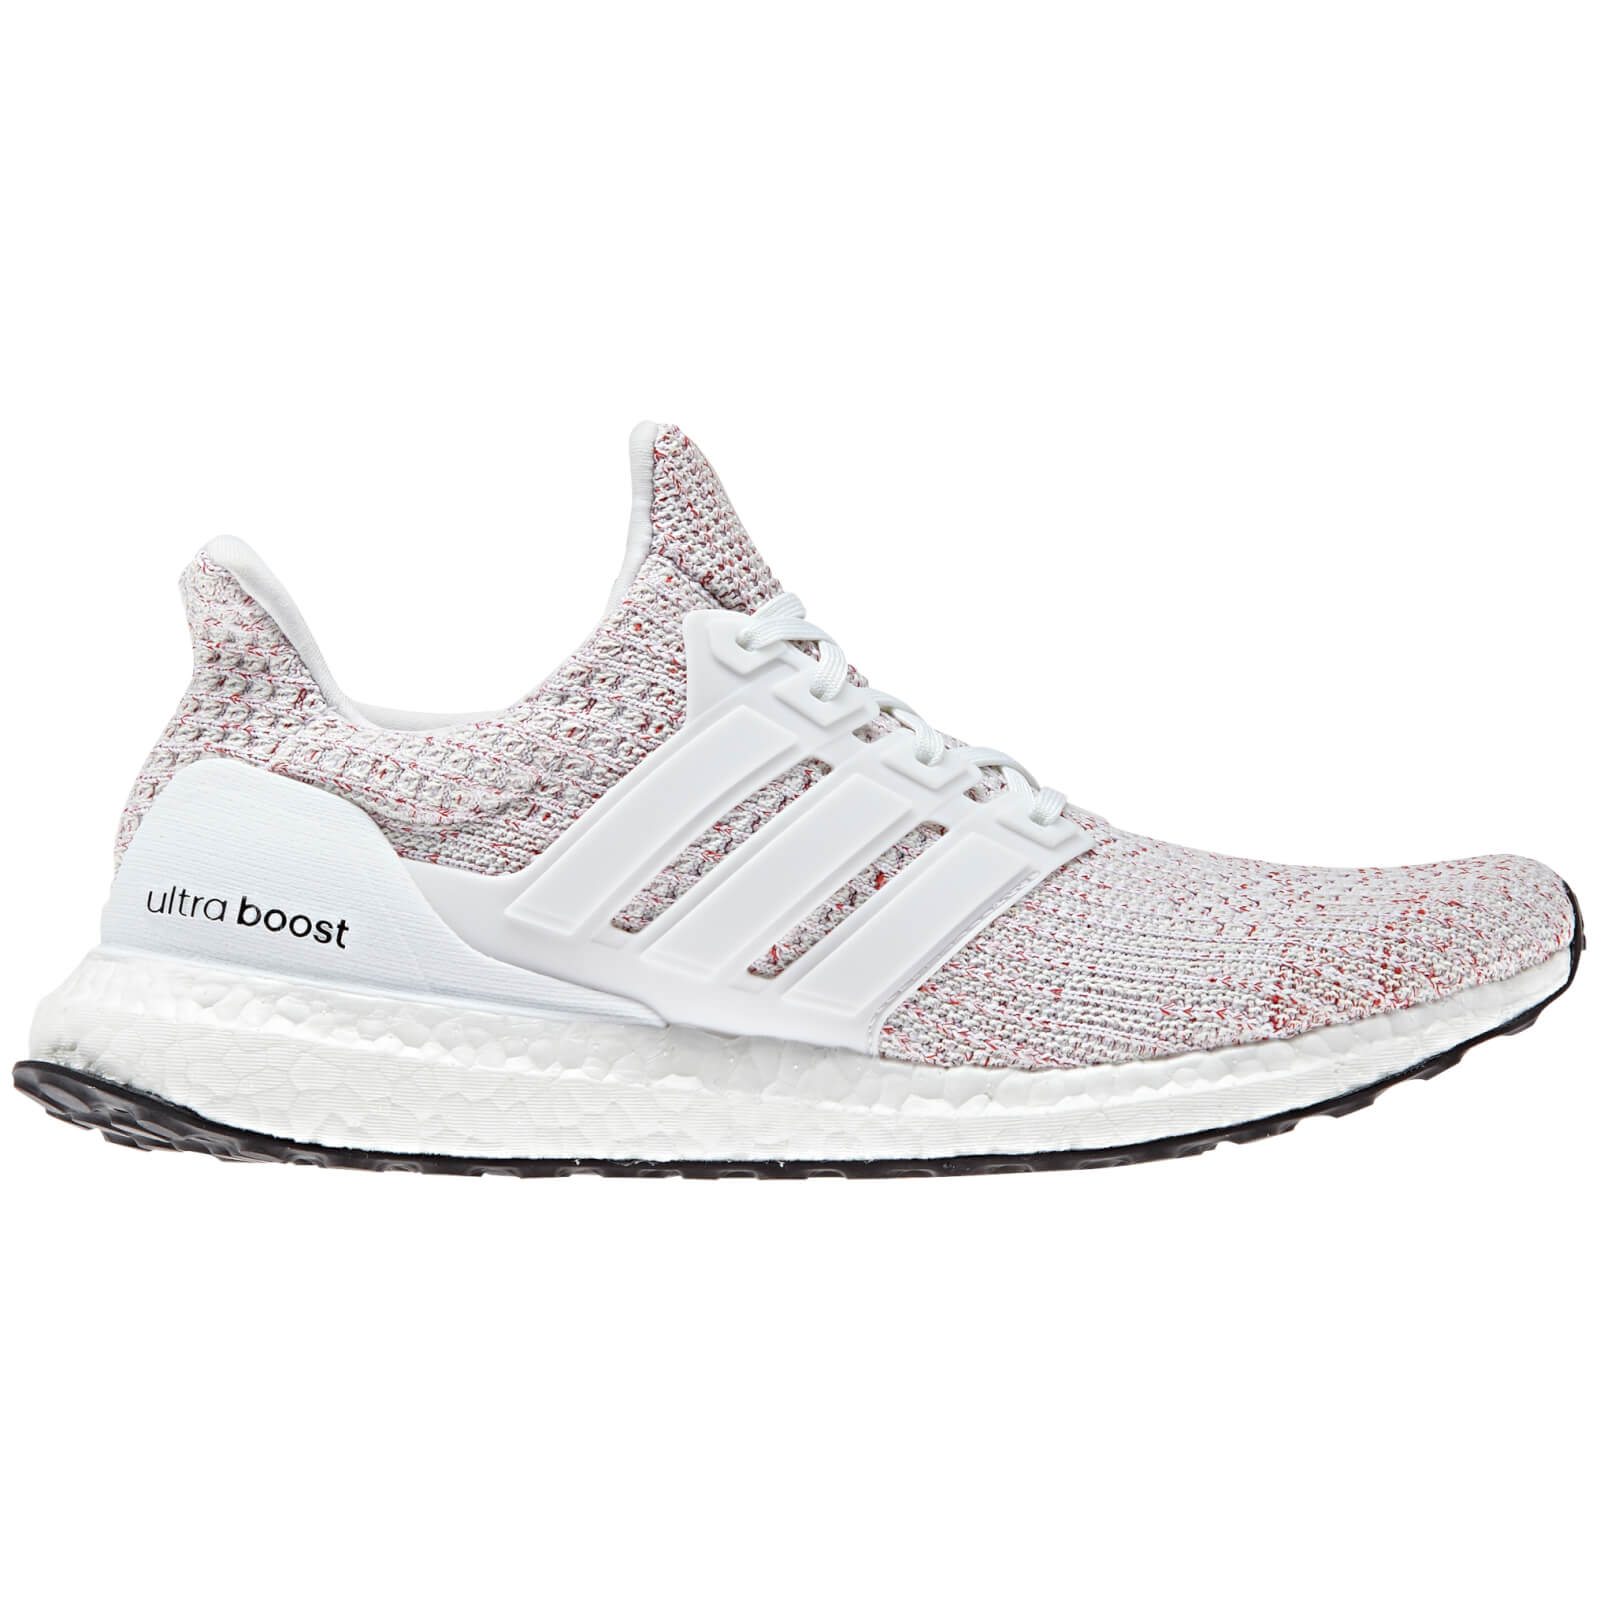 c8f1bfd5e adidas Men s Ultraboost Running Shoes - White Red